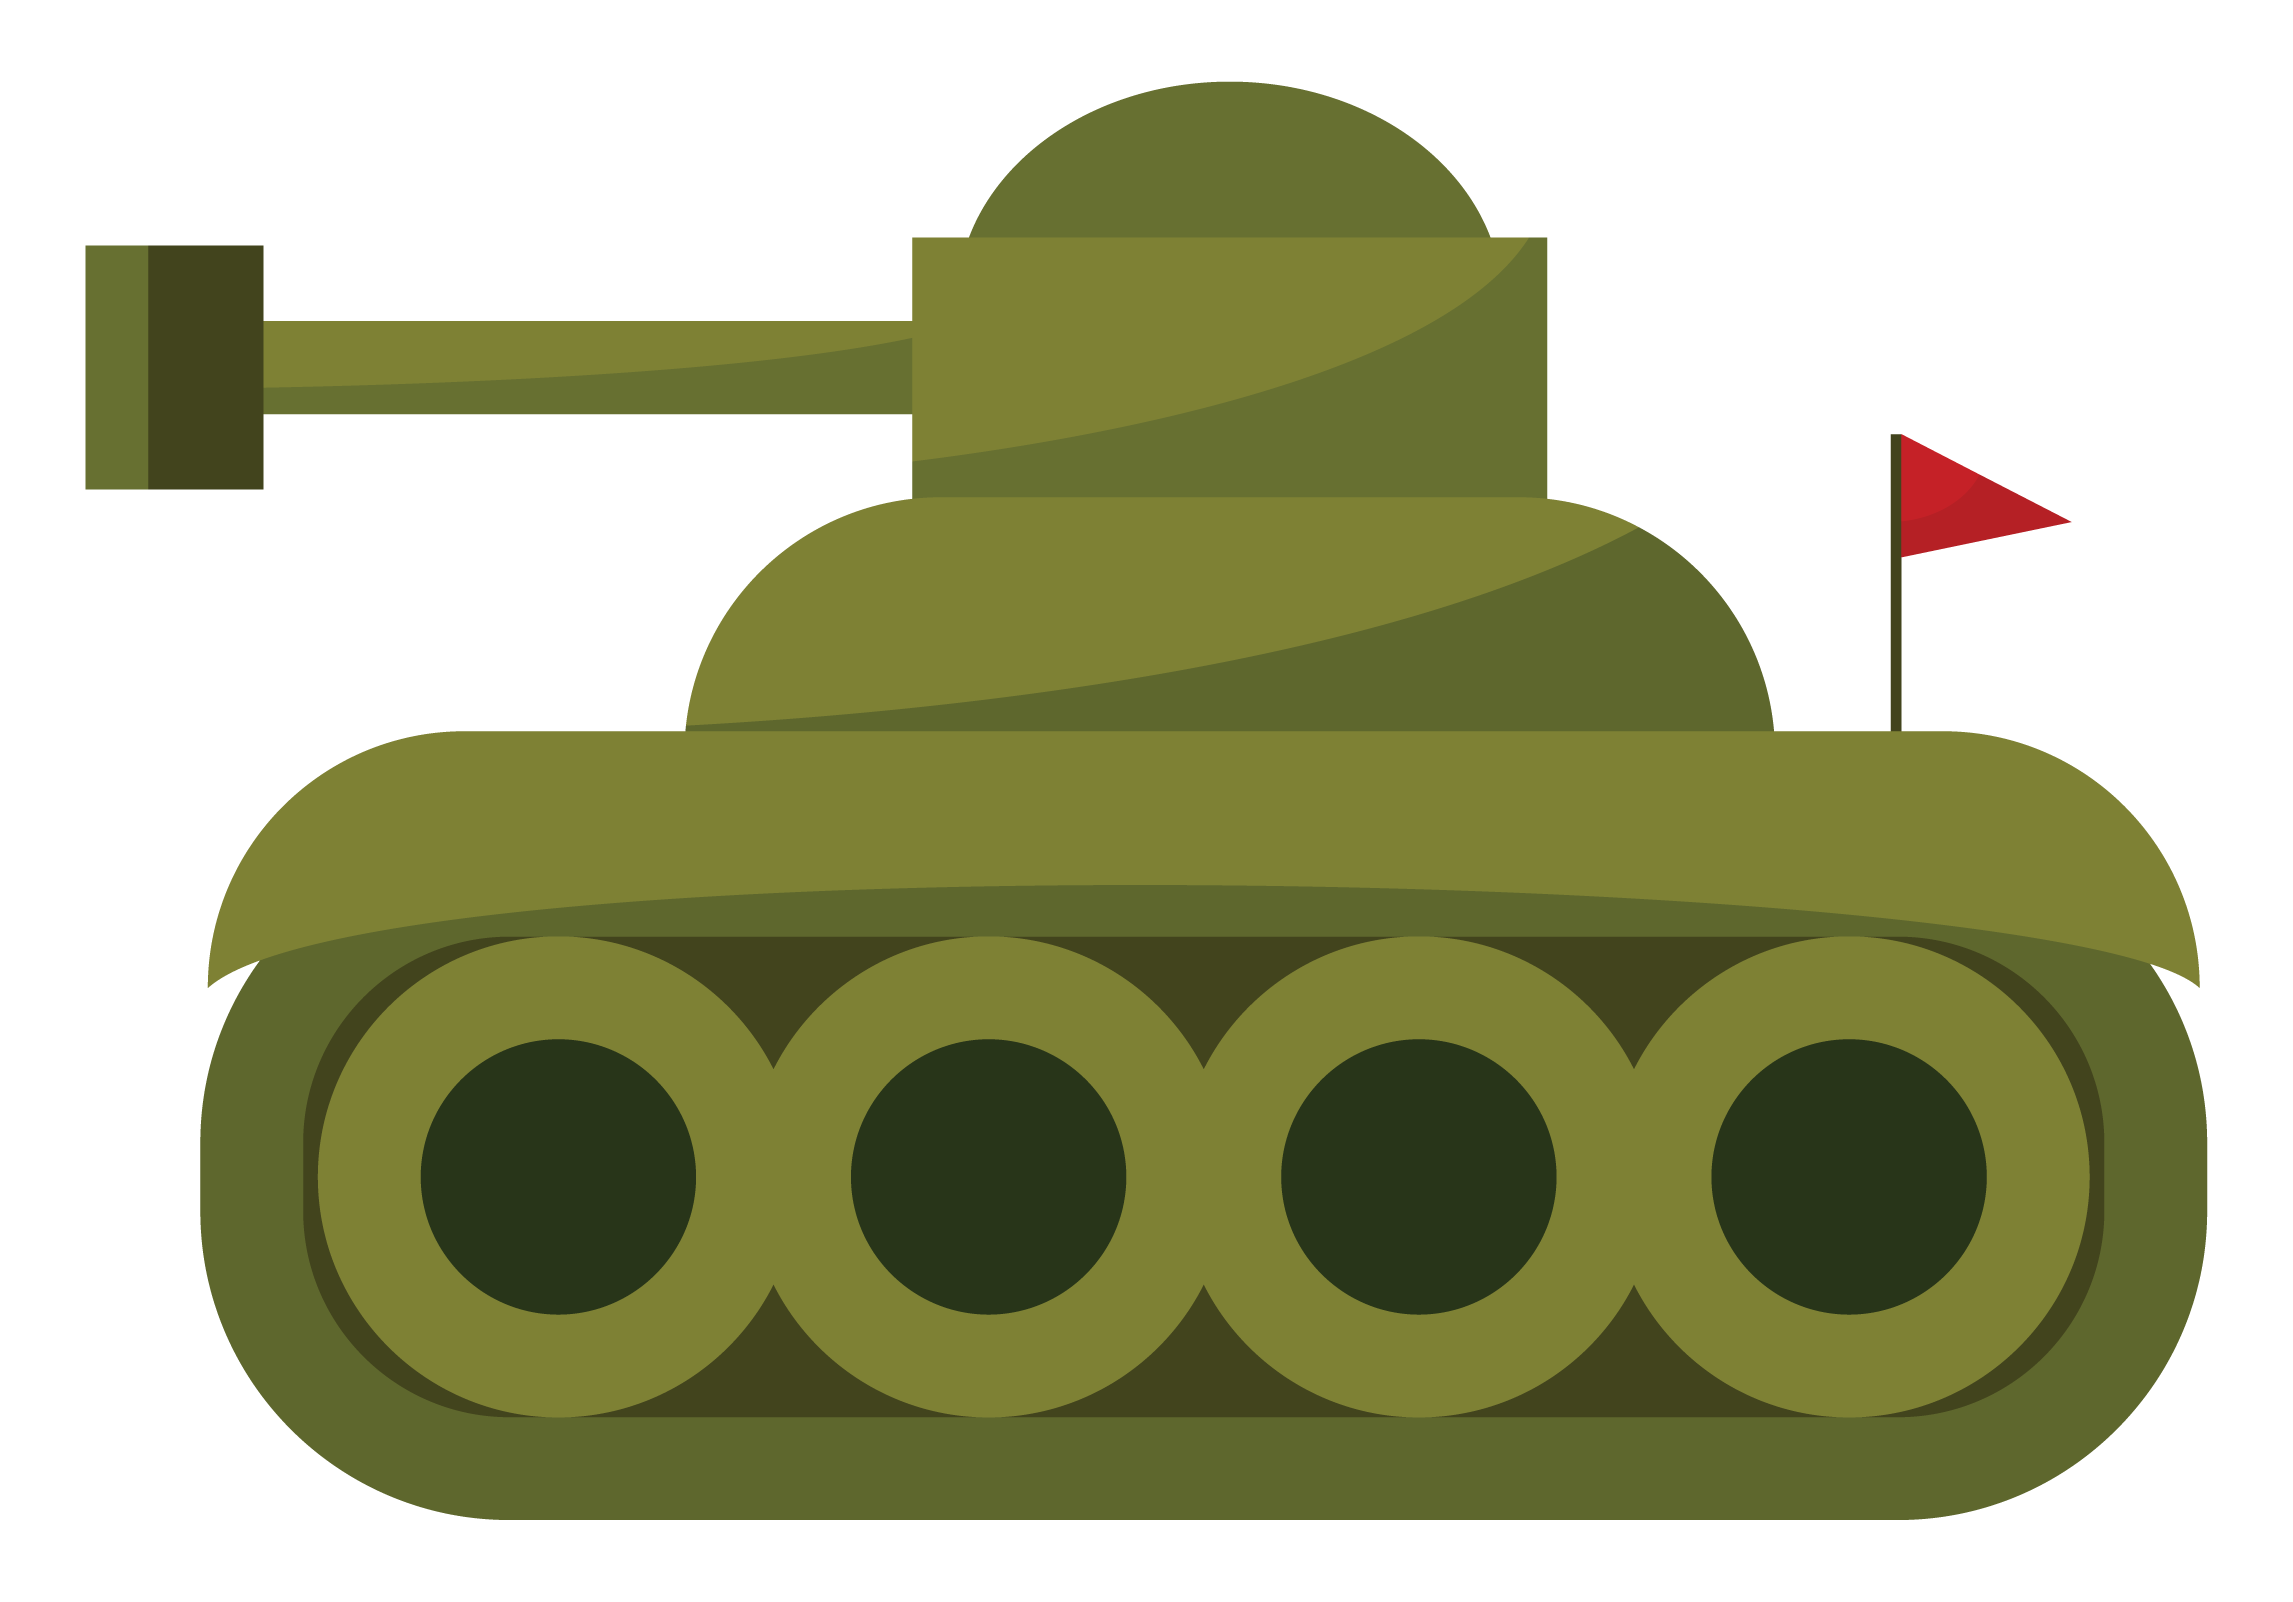 Military images clipart clip freeuse library Army Tank Clipart | Free download best Army Tank Clipart on ... clip freeuse library